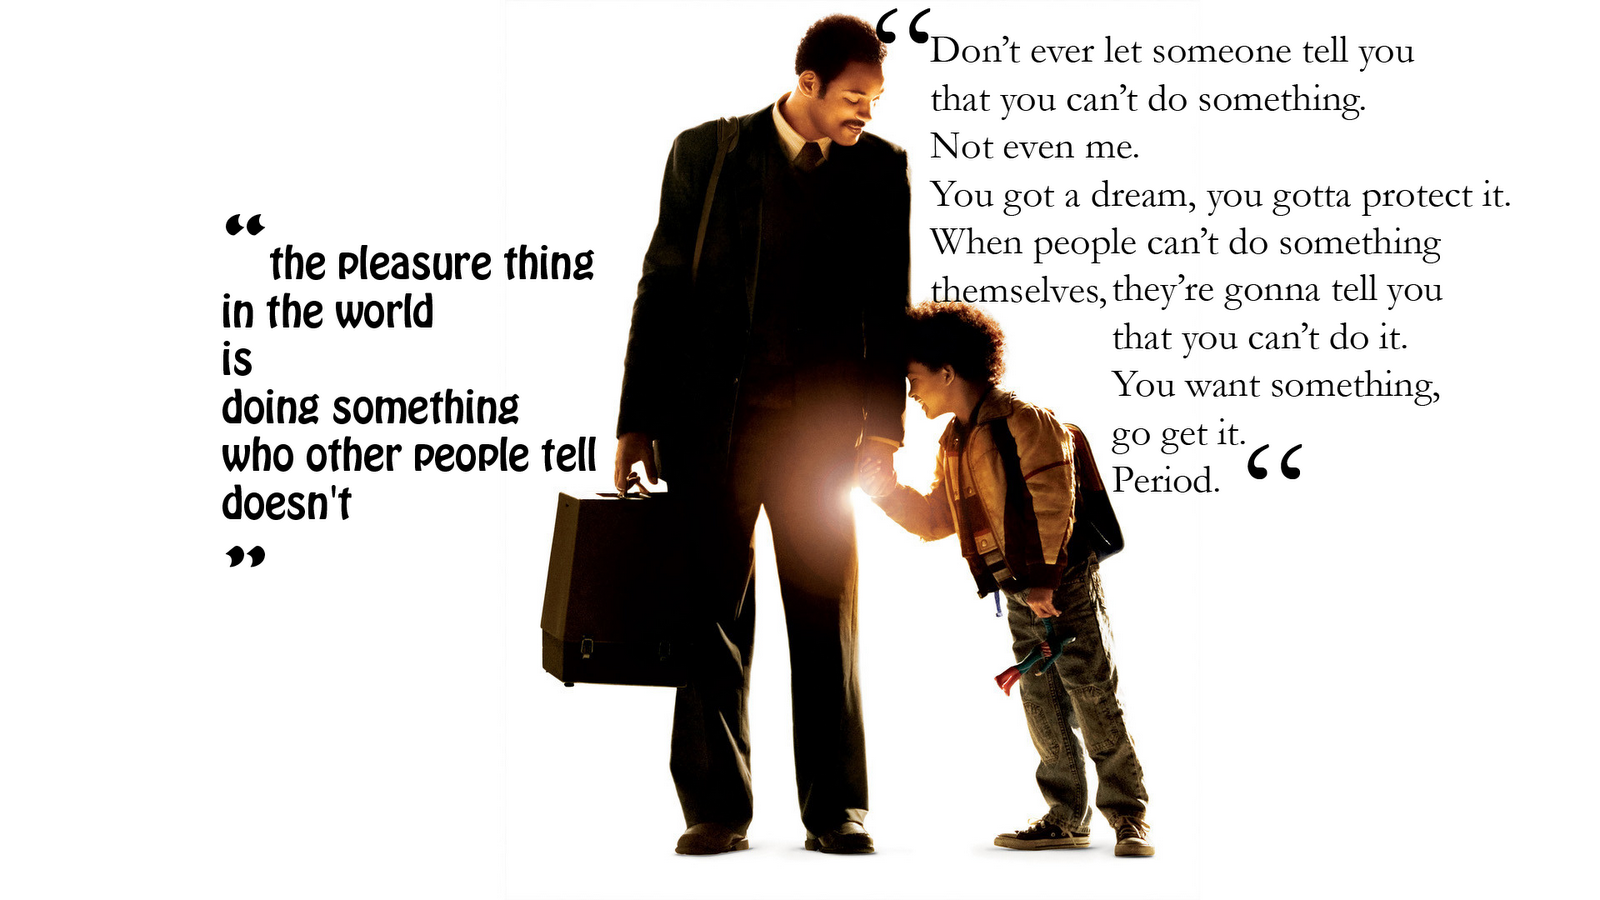 Pursuit Of Happiness Quotes. QuotesGram